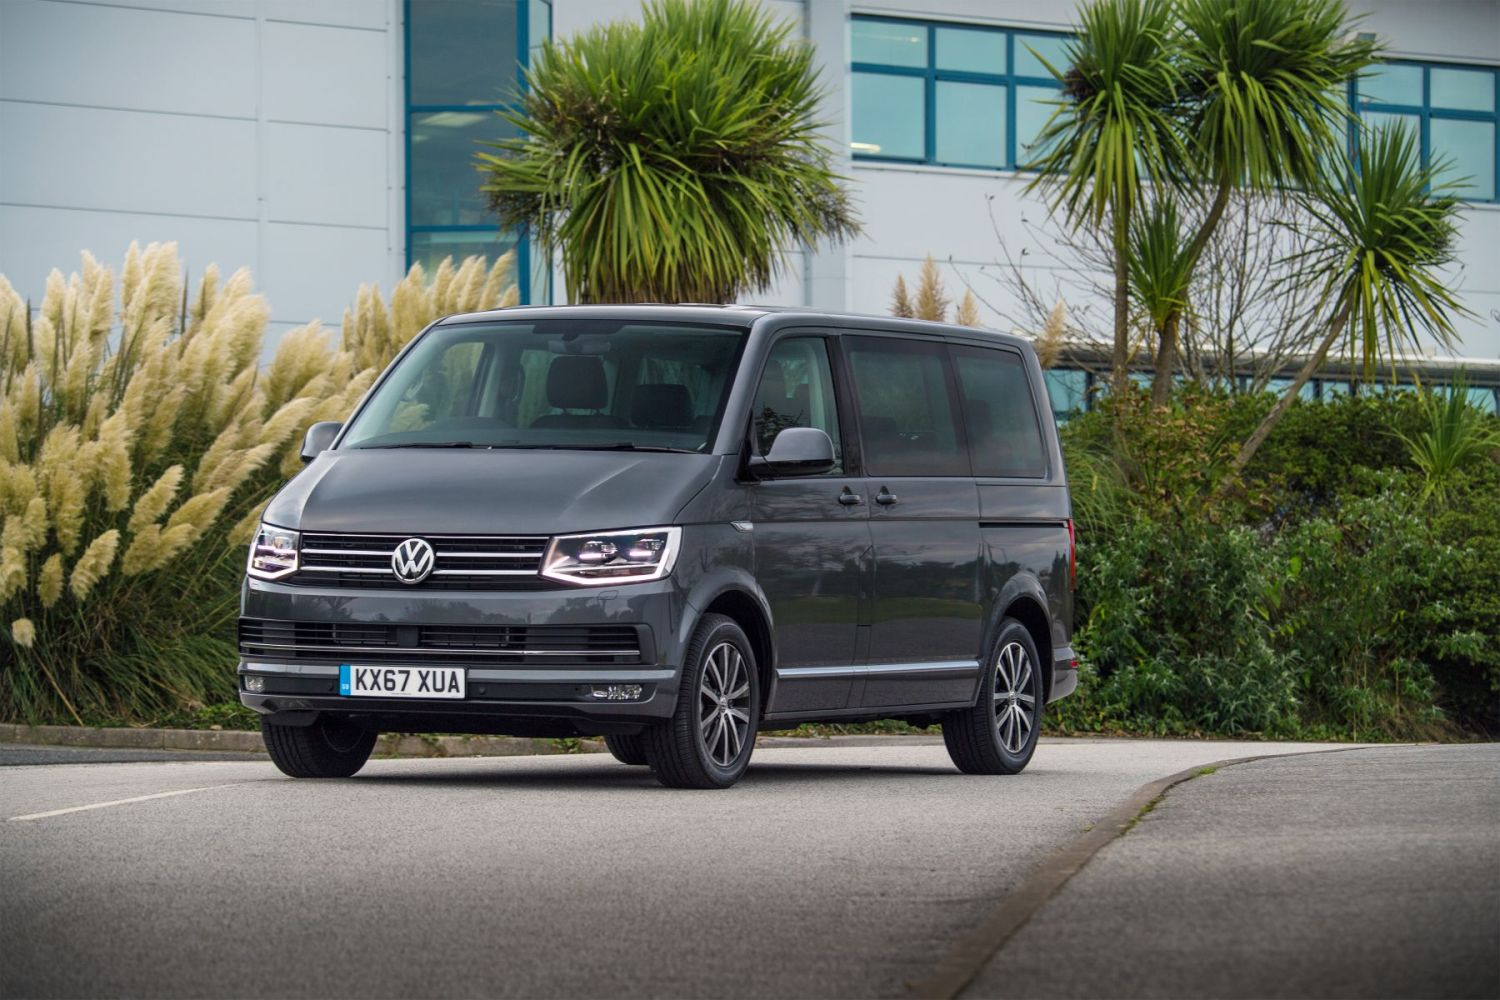 VW Caravelle on The Apprentice